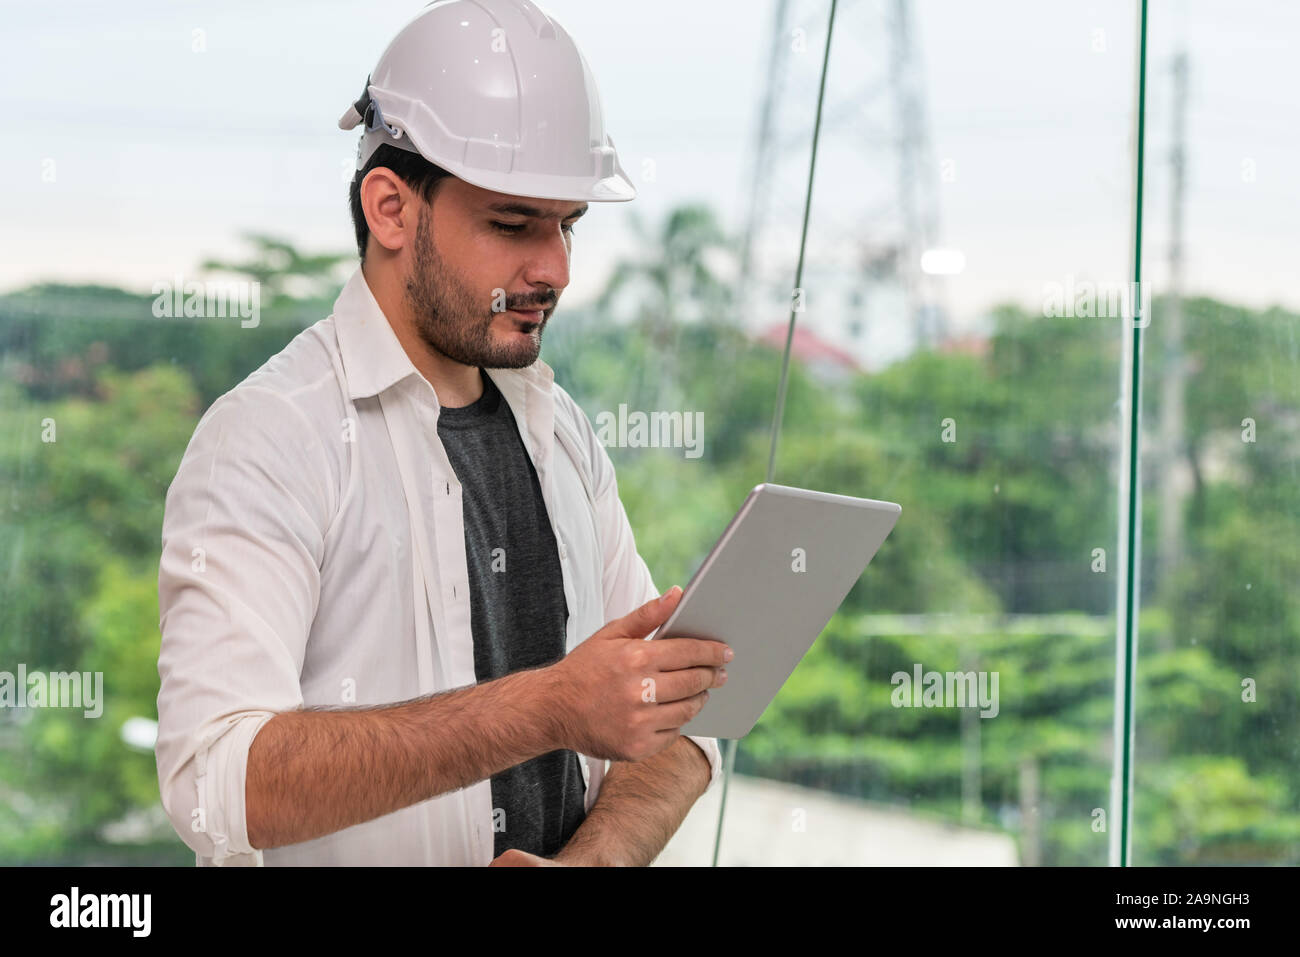 Young Man Architect Or Engineer Working With Tablet Computer To Make Interior Design At Workplace Real Estate Business And Civil Engineering Concept Stock Photo Alamy